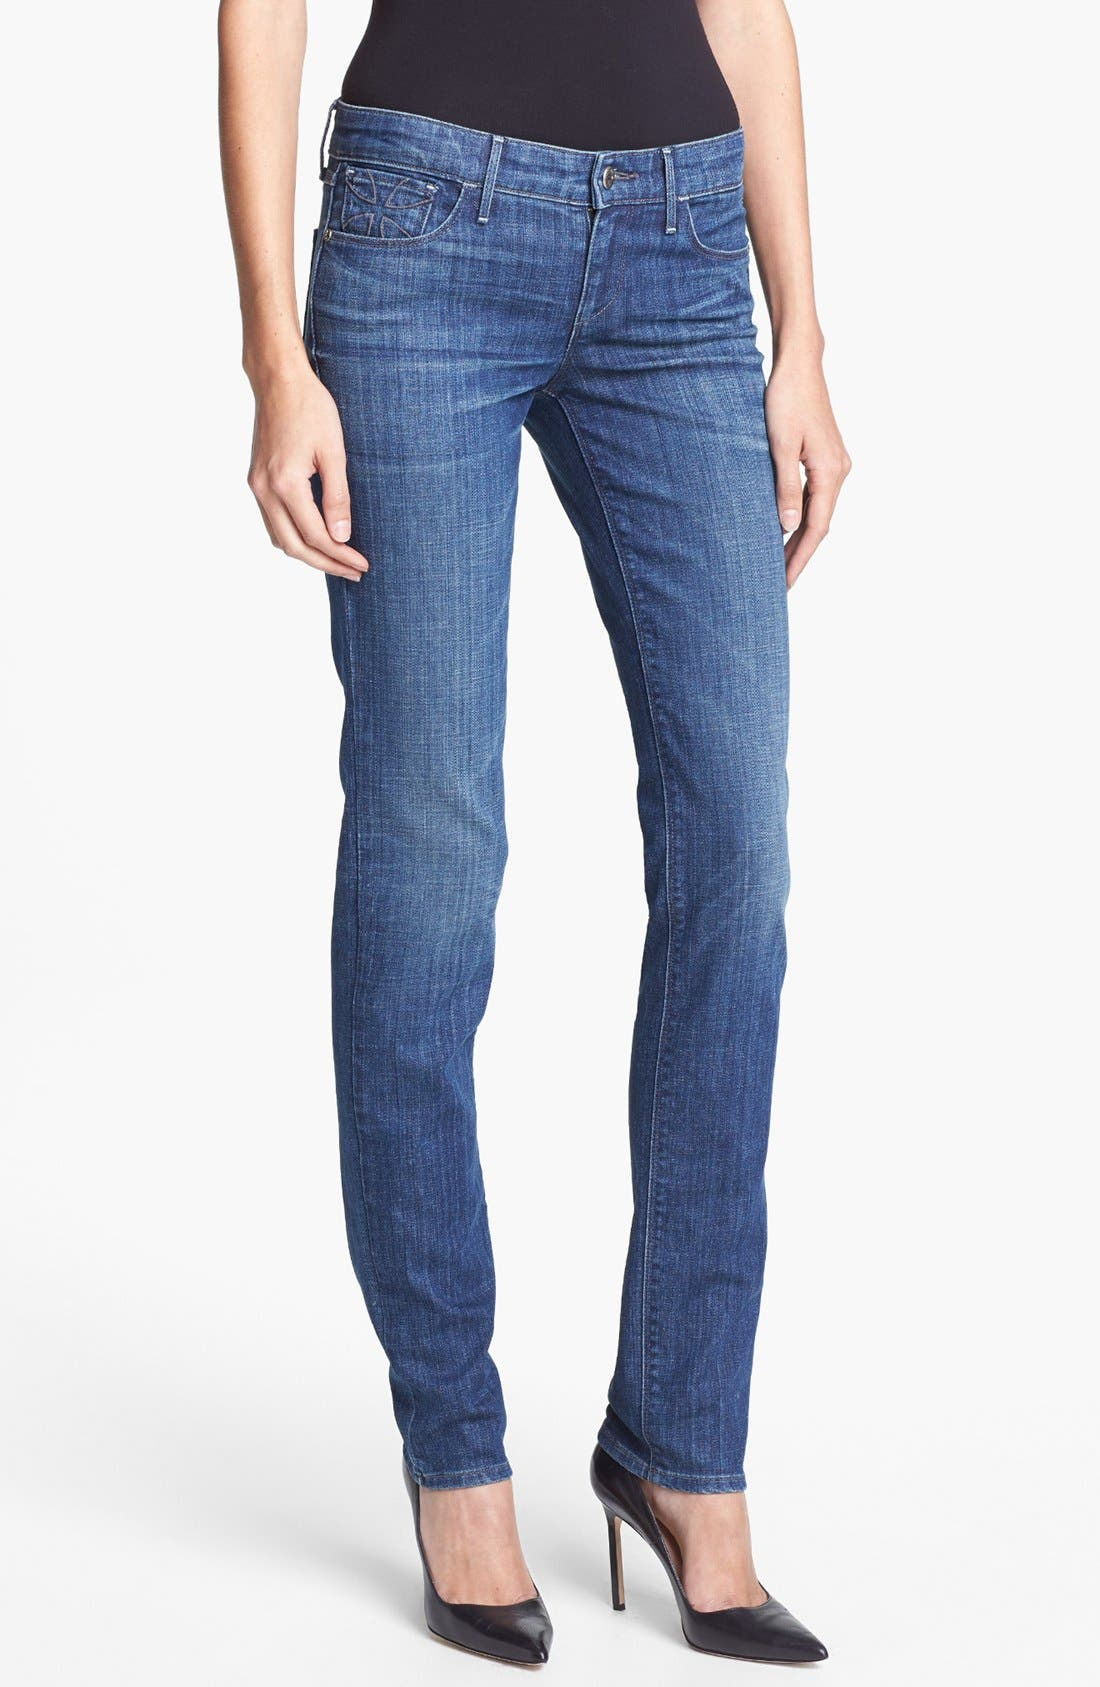 'Alice' Skinny Stretch Jeans,                             Main thumbnail 1, color,                             480